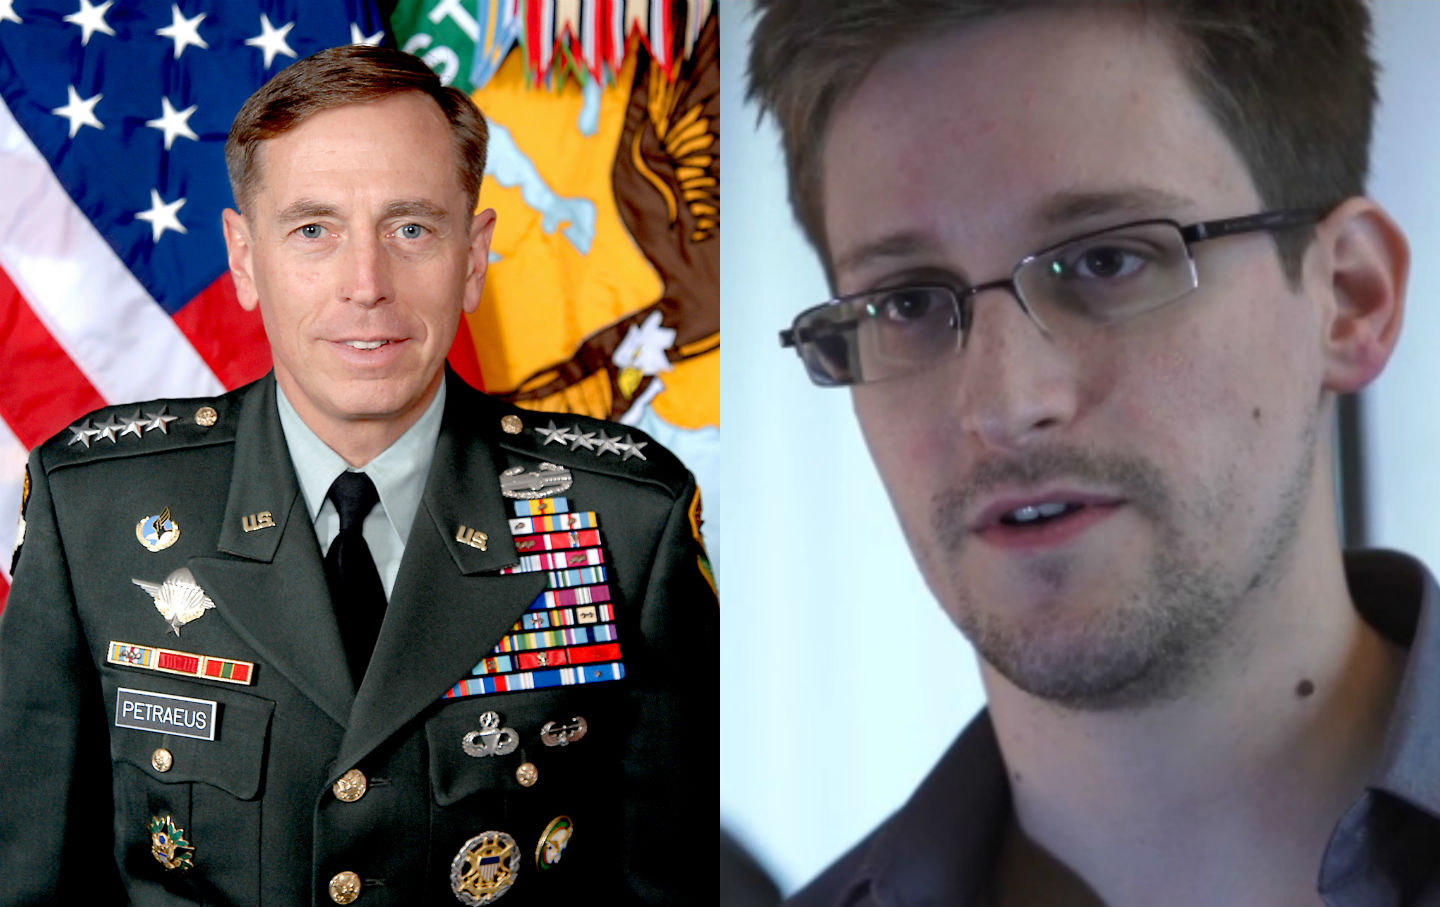 General-David-Petraeus-and-Edward-Snowden